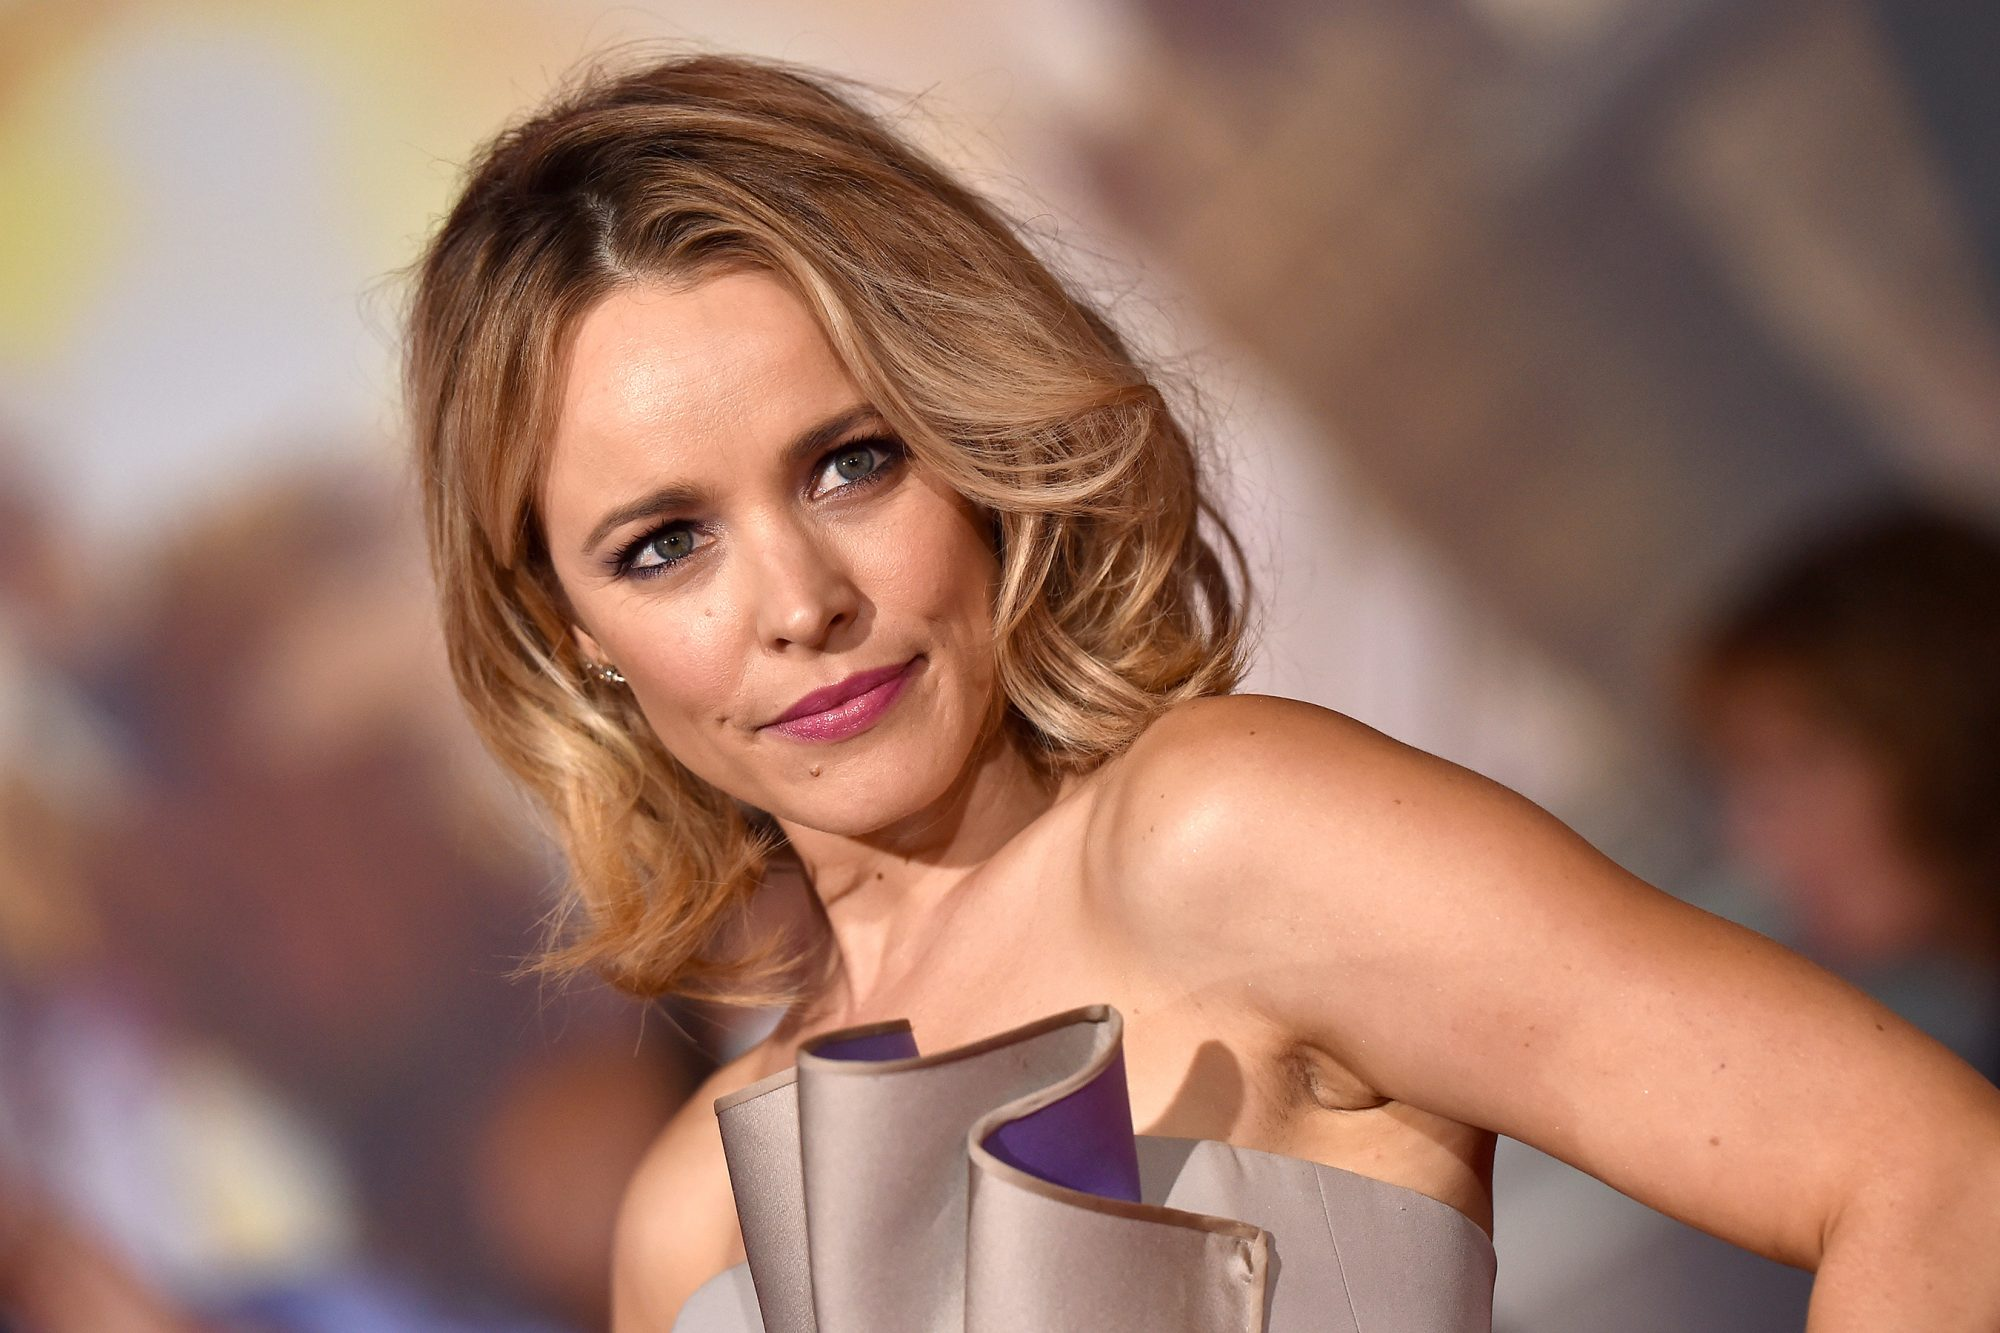 Rachel McAdams: Through the years